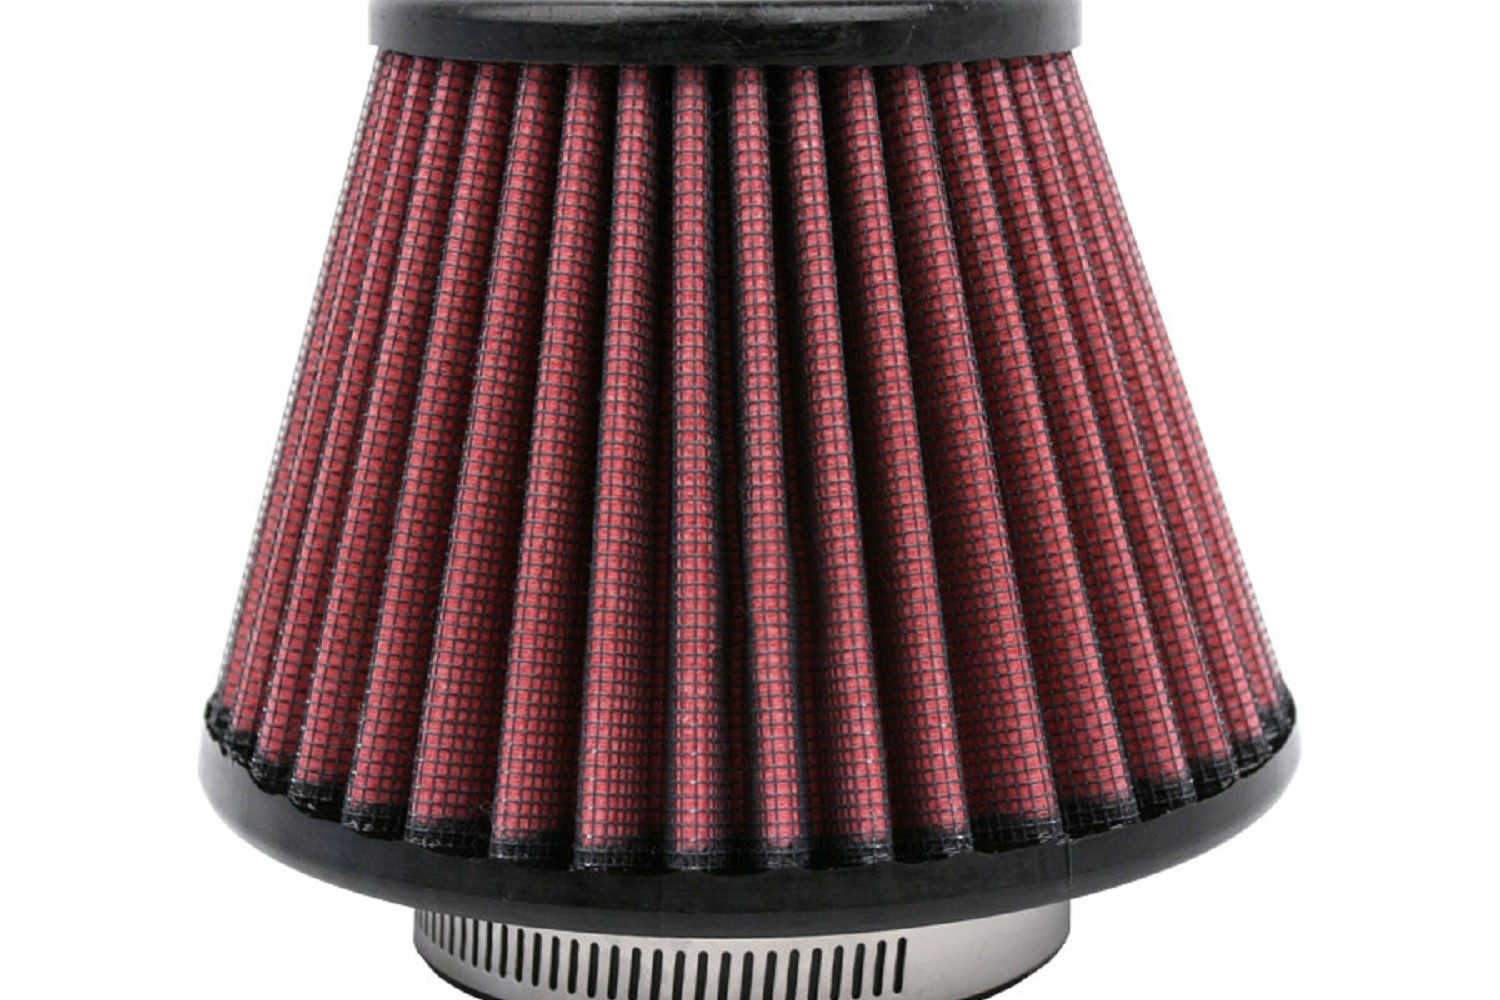 35daf3bf4a Steeda Fiesta Cold Air Intake Filter Replacement, 281 0006